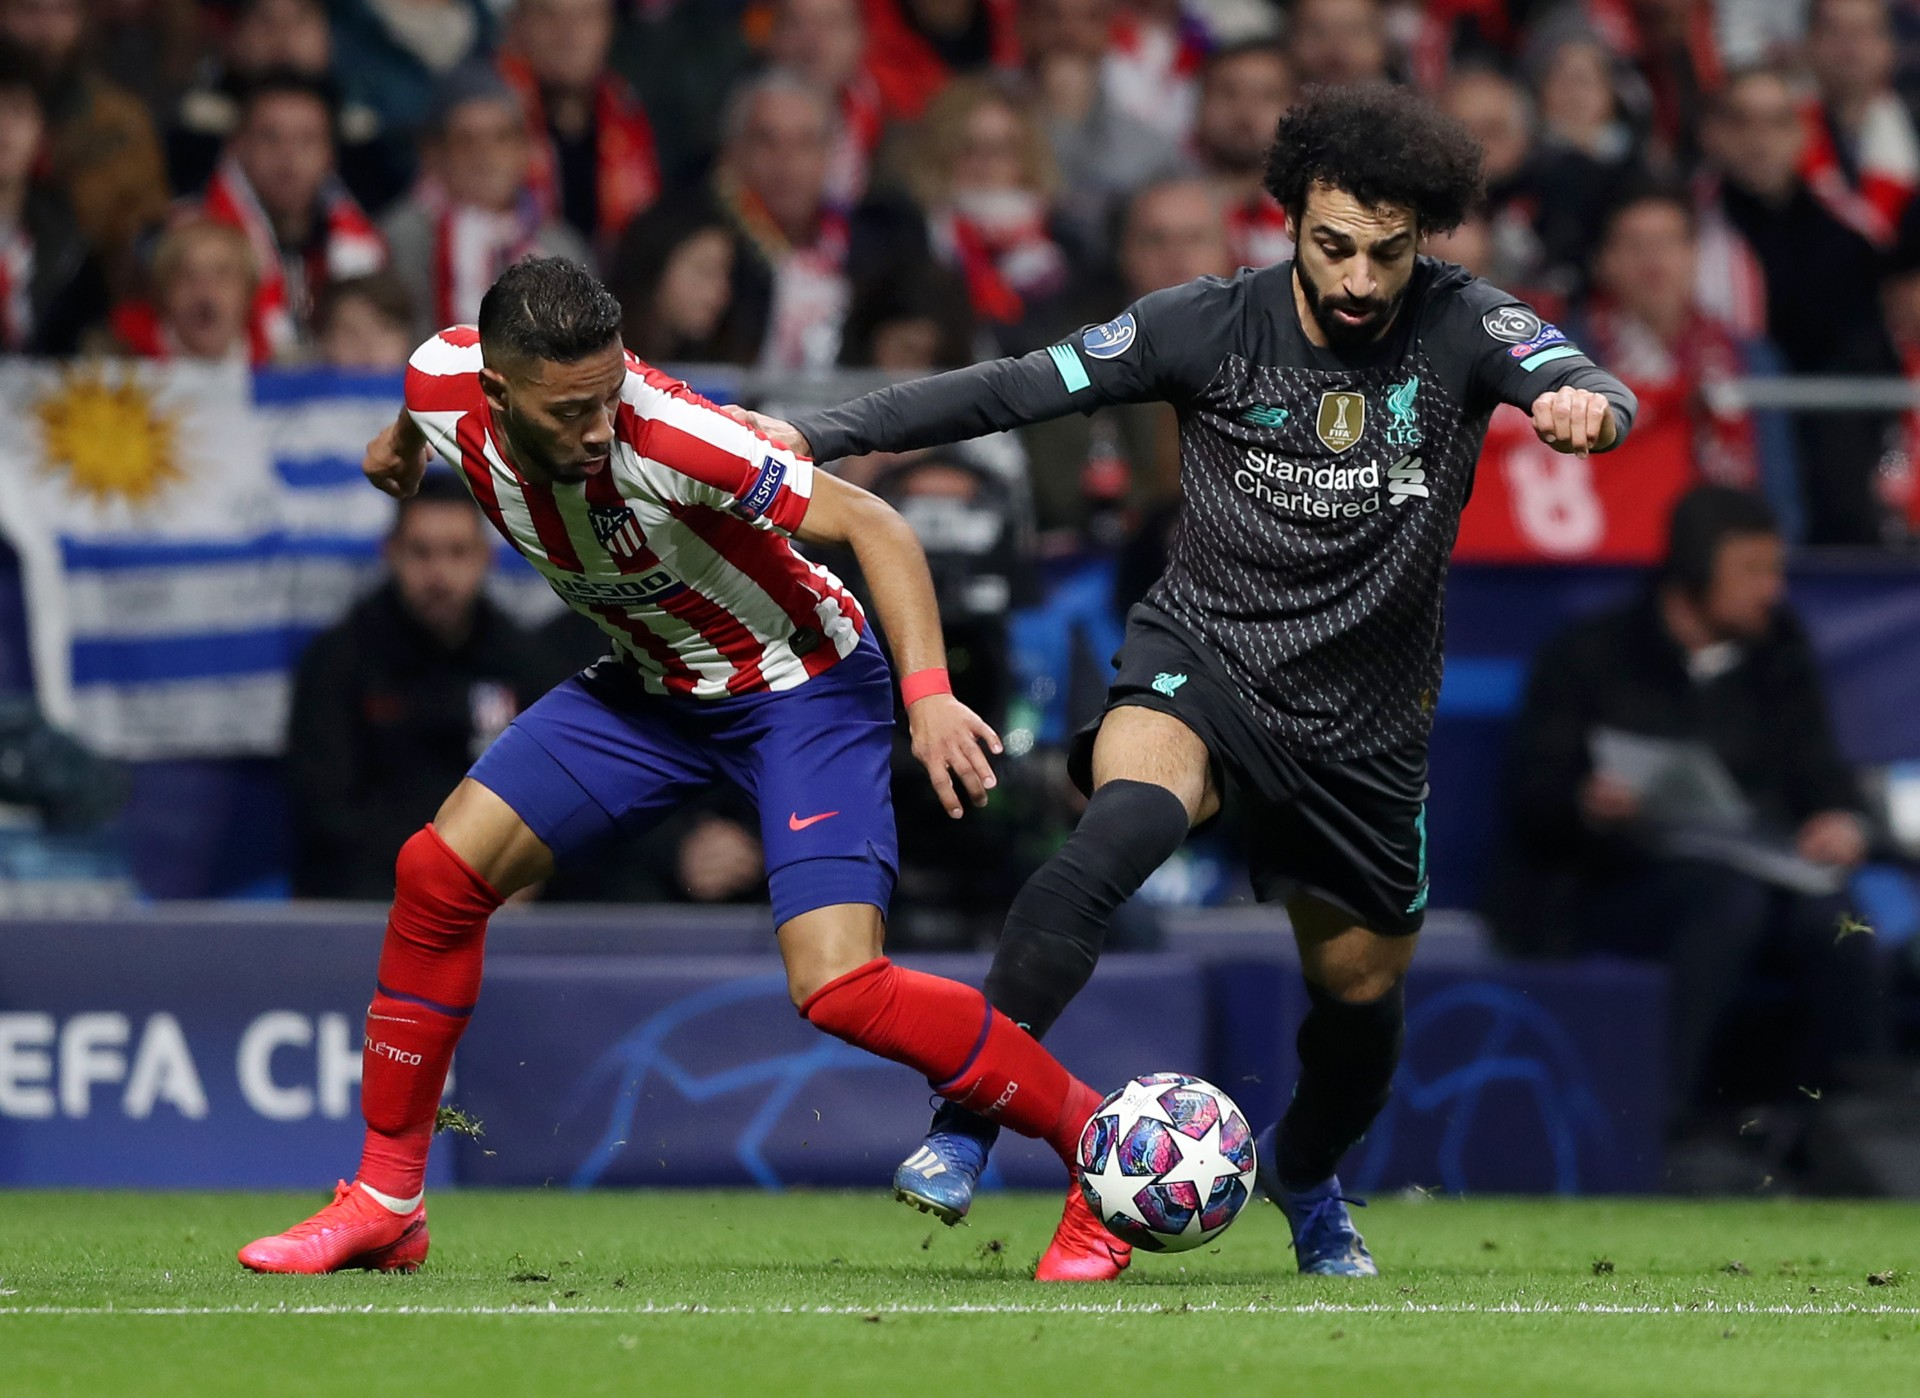 Atletico Madrid - Liverpool (1-0), l'Atlético prend une petite option